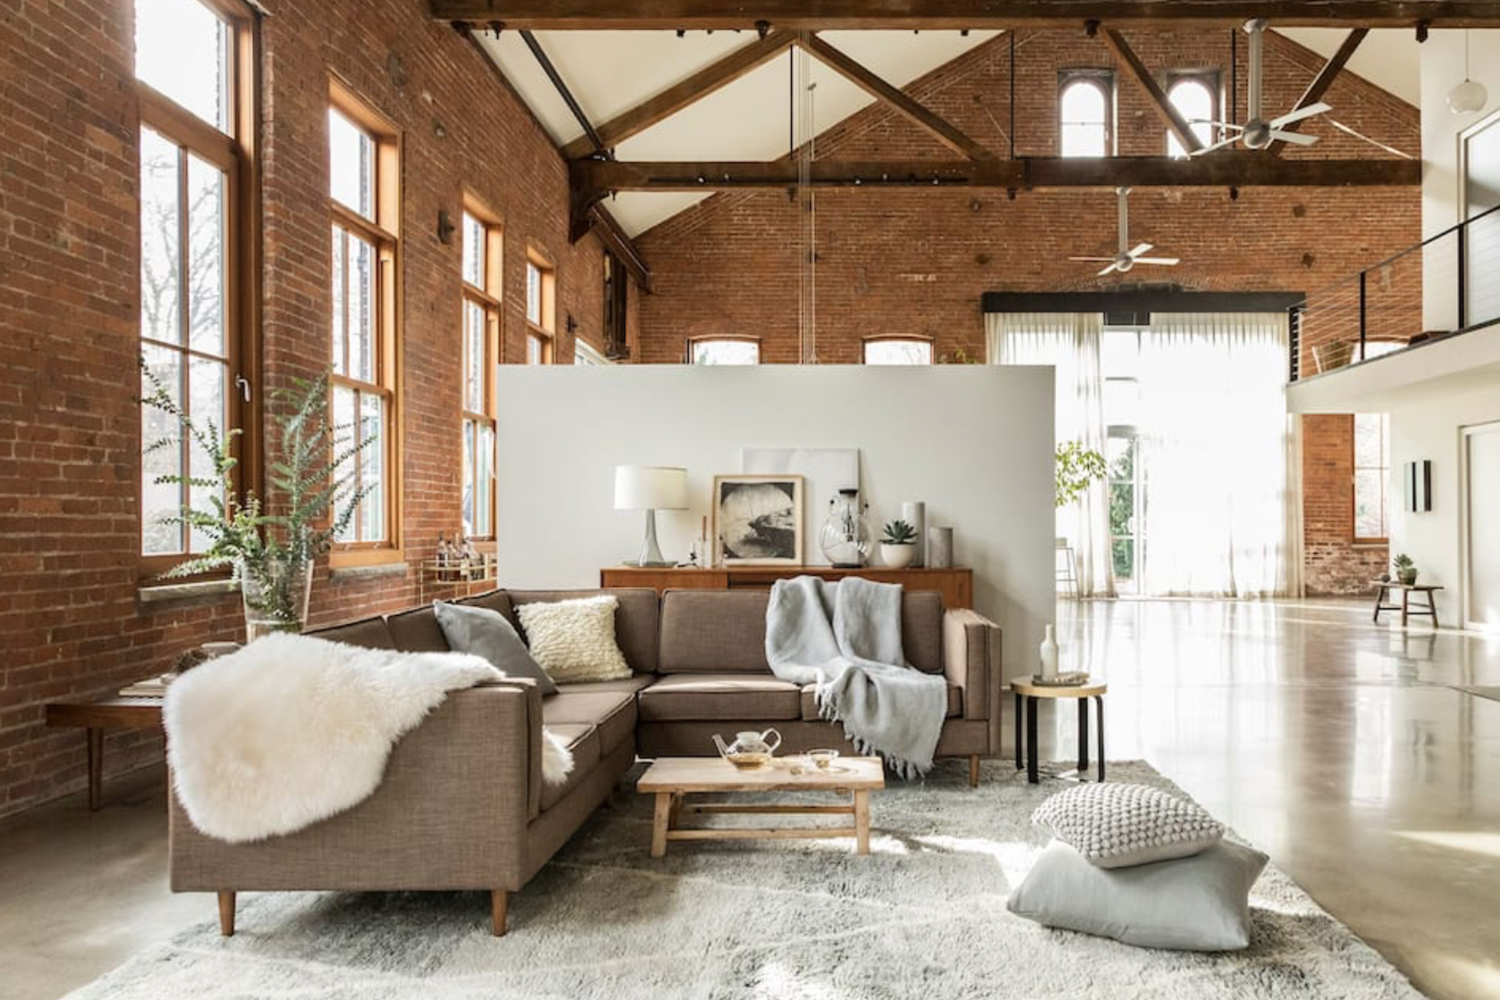 Design Loft Converted From 1860s Brick Factory